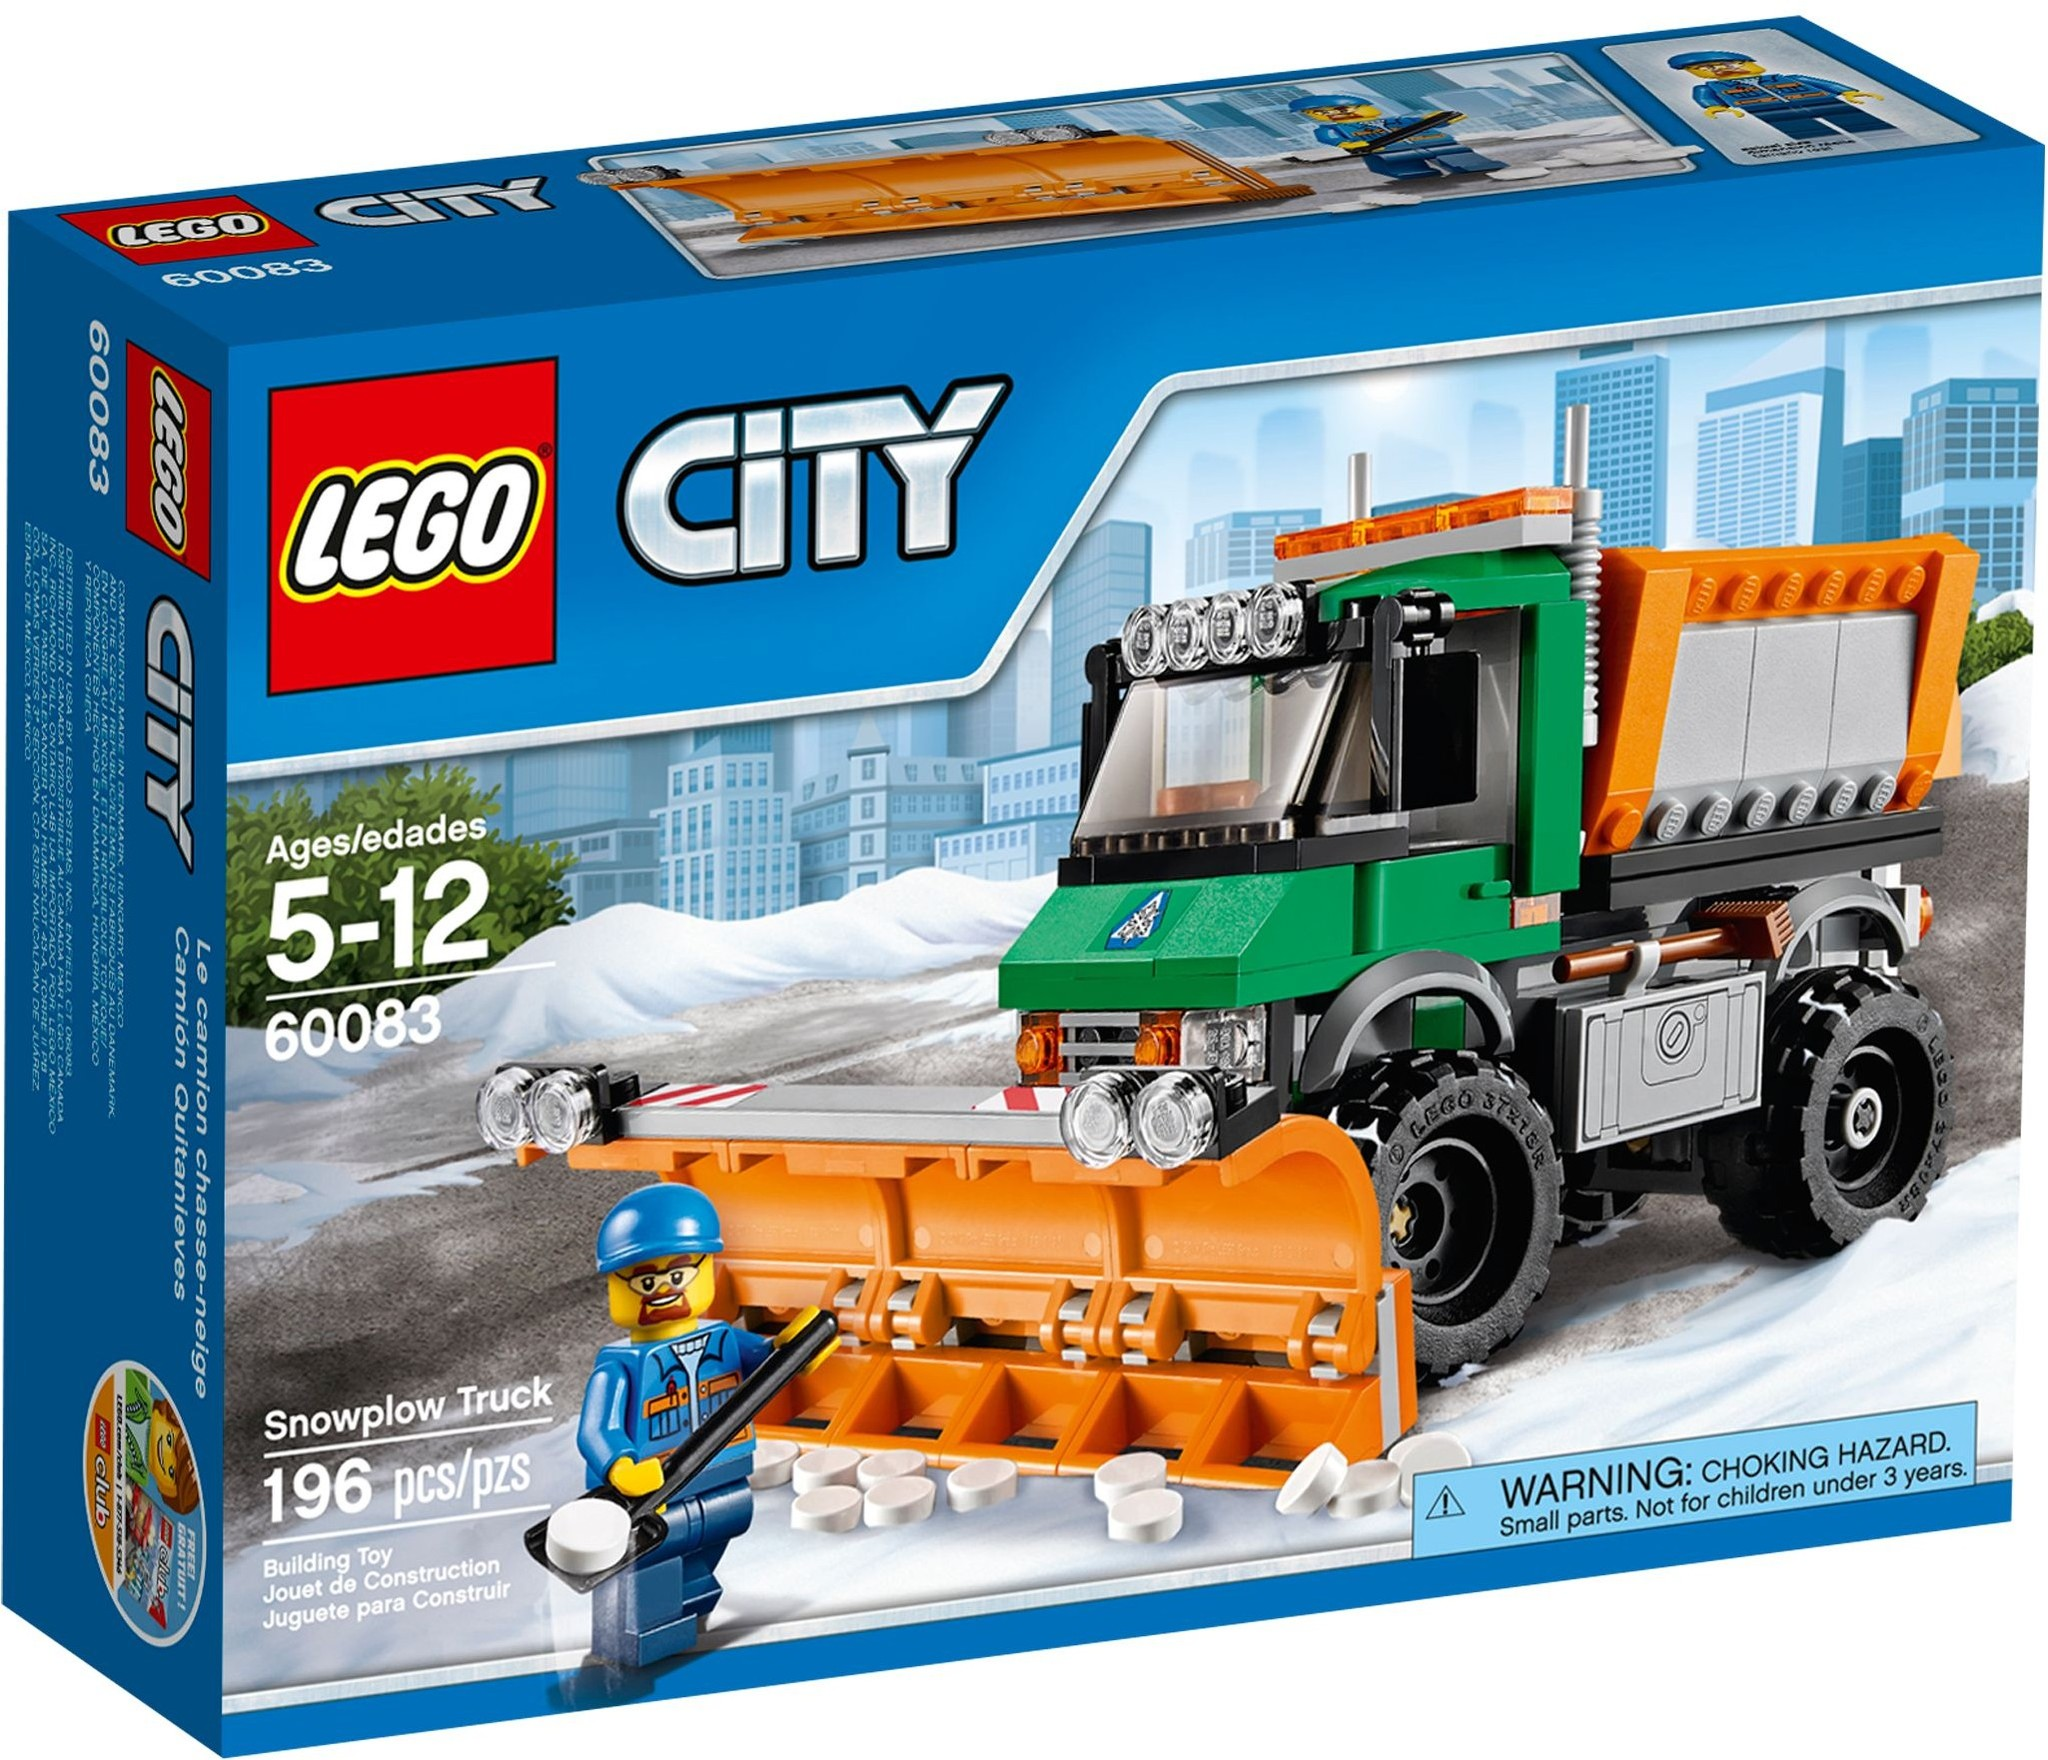 LEGO 60083 - City - Snowplough Truck